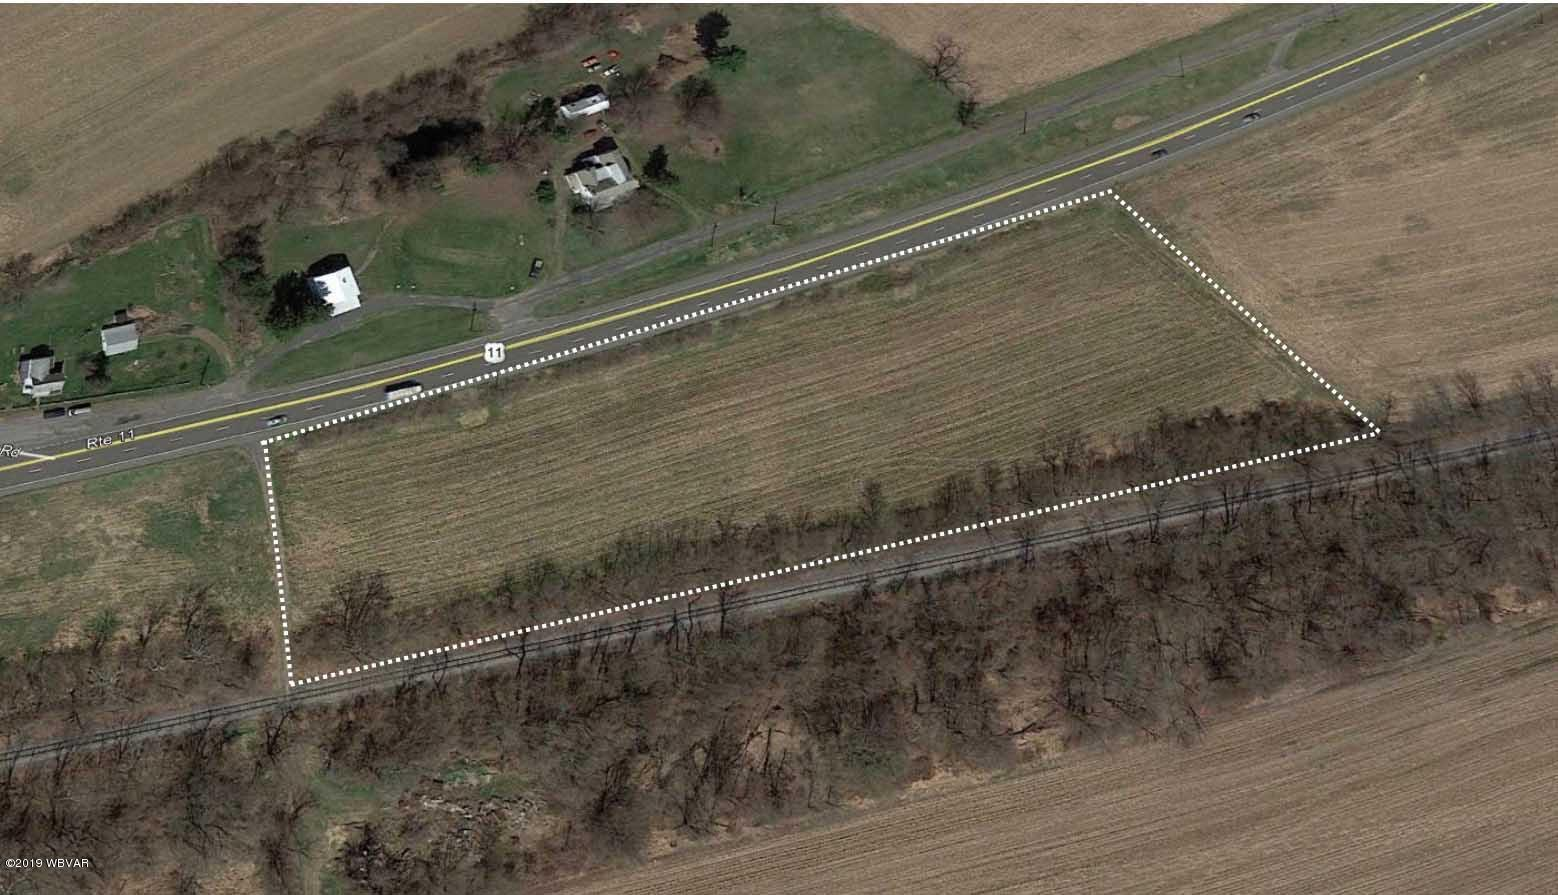 265 POINT TOWNSHIP DRIVE, Northumberland, PA 17857, ,Land,For sale,POINT TOWNSHIP,WB-86716